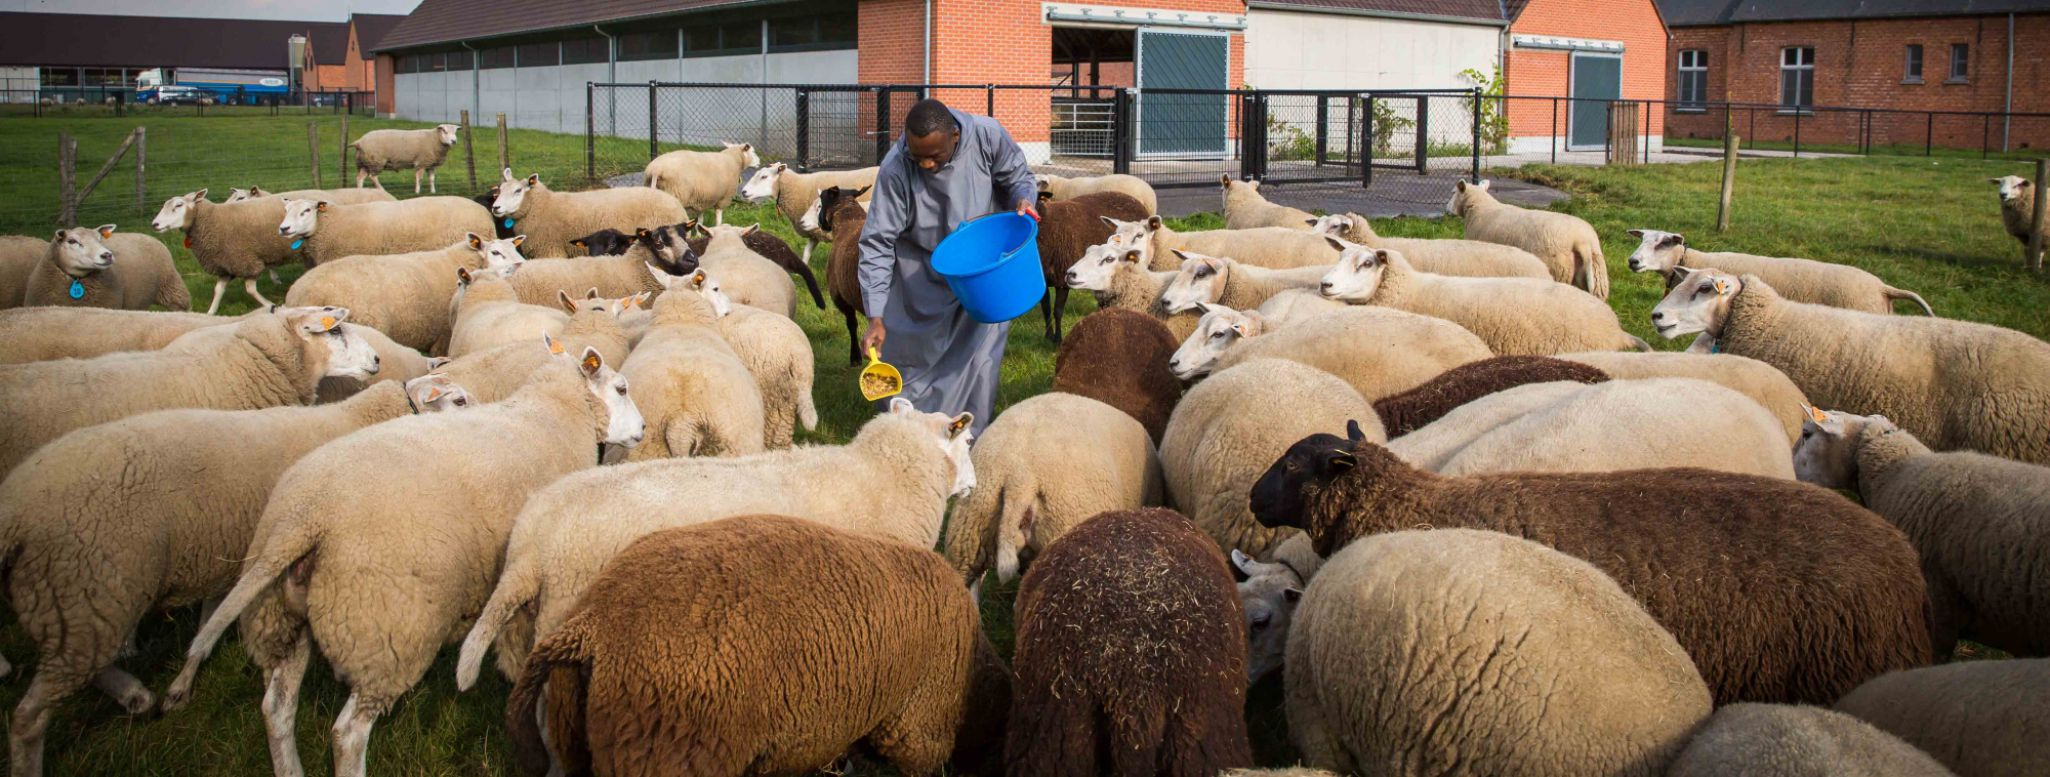 A monk stands amongst the sheep to feed them.